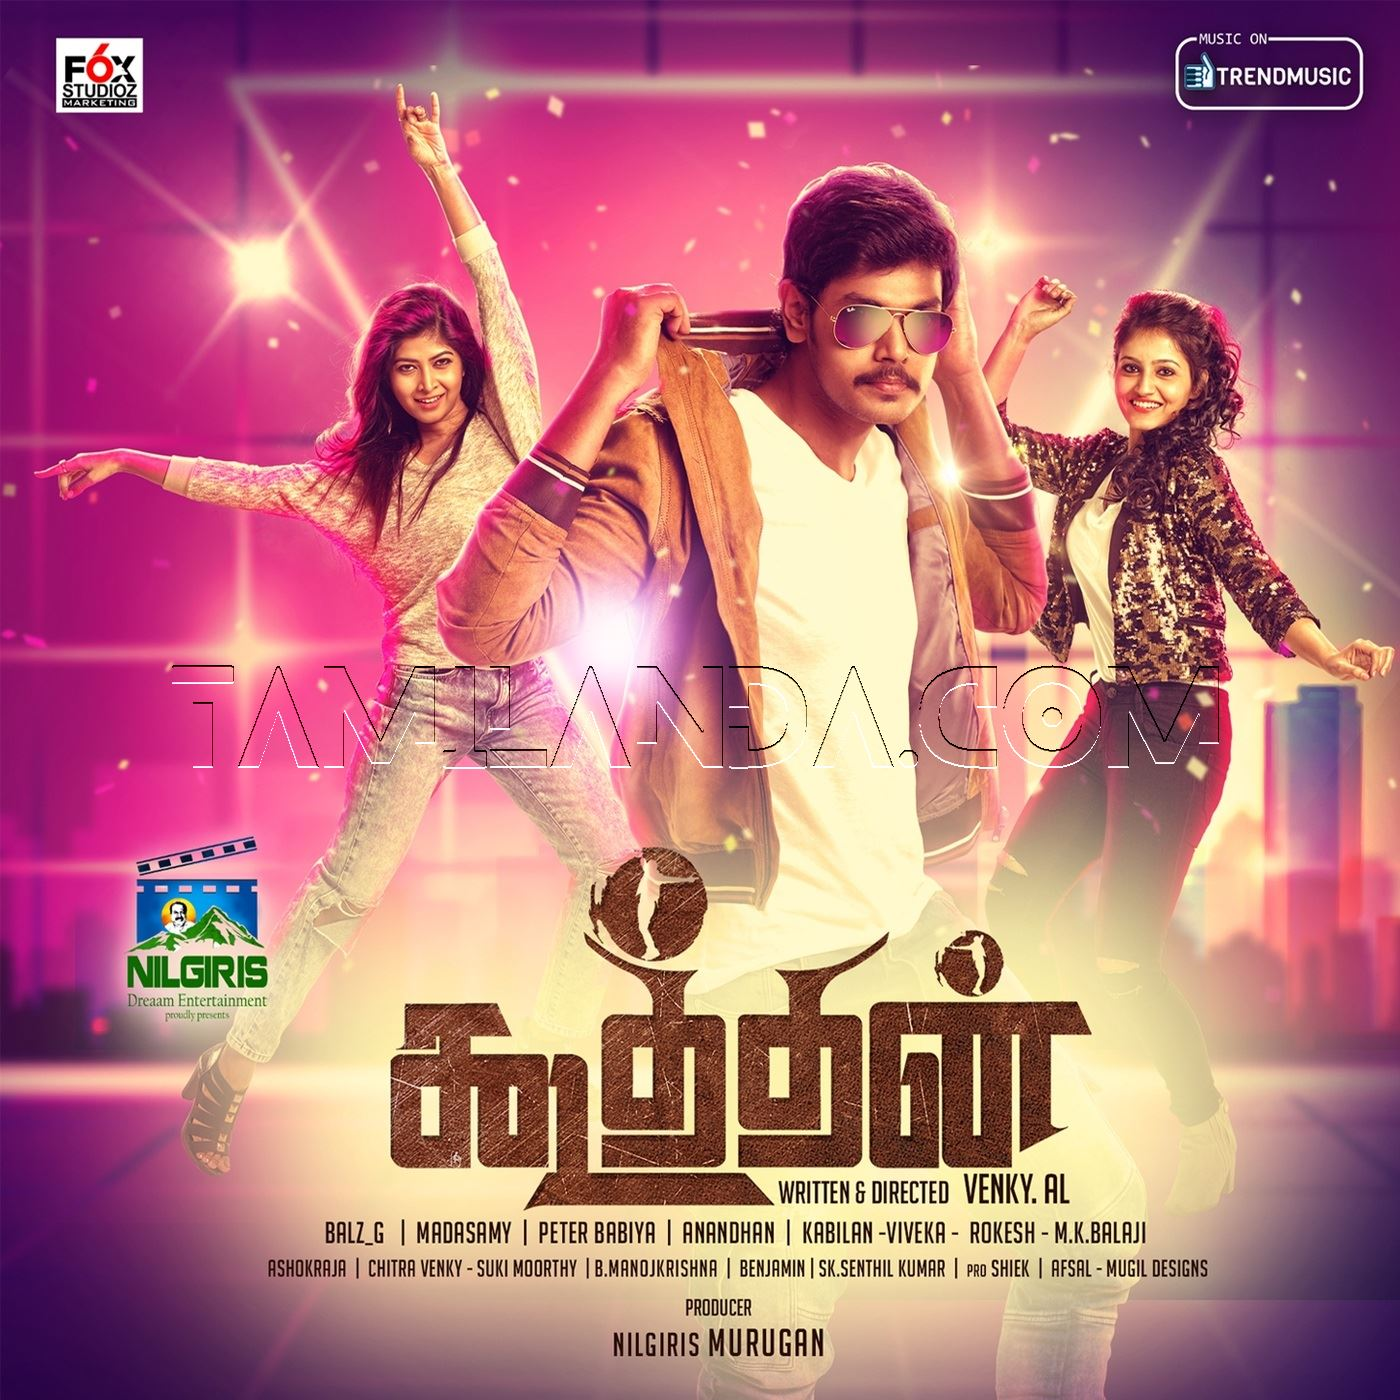 Koothan FLAC/WAV Songs